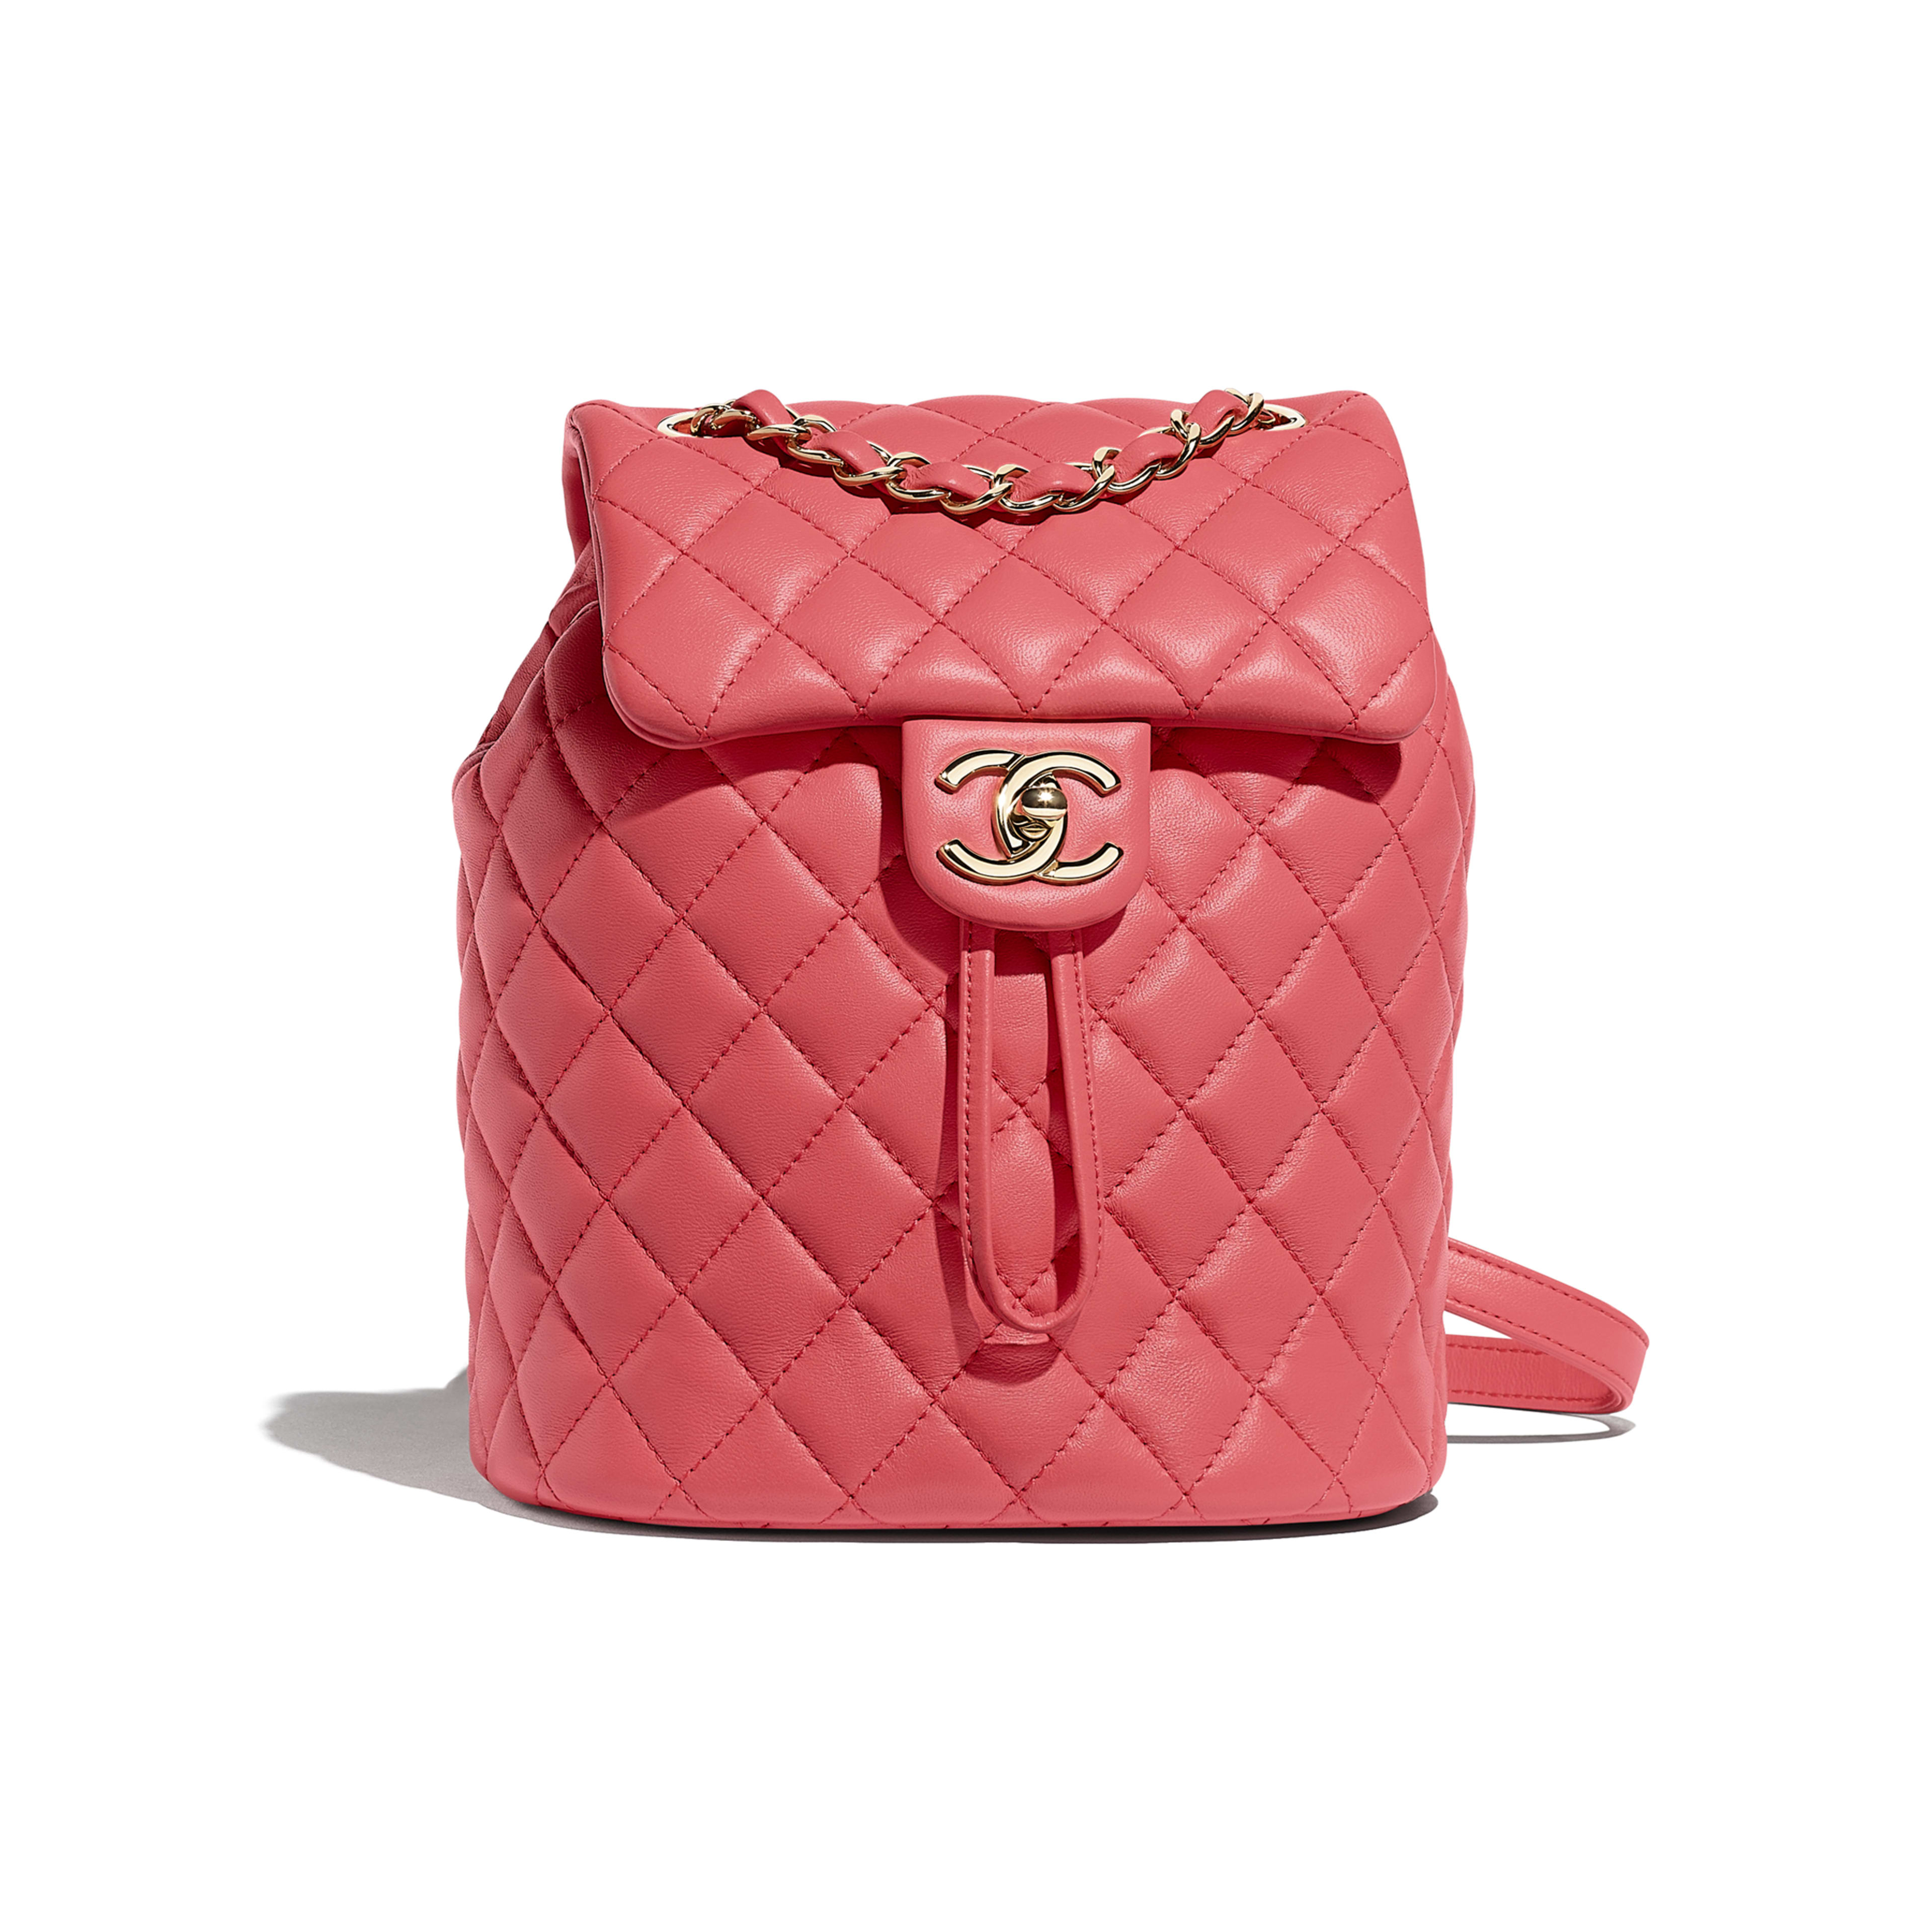 Backpack - Pink - Lambskin & Gold-Tone Metal - Default view - see full sized version